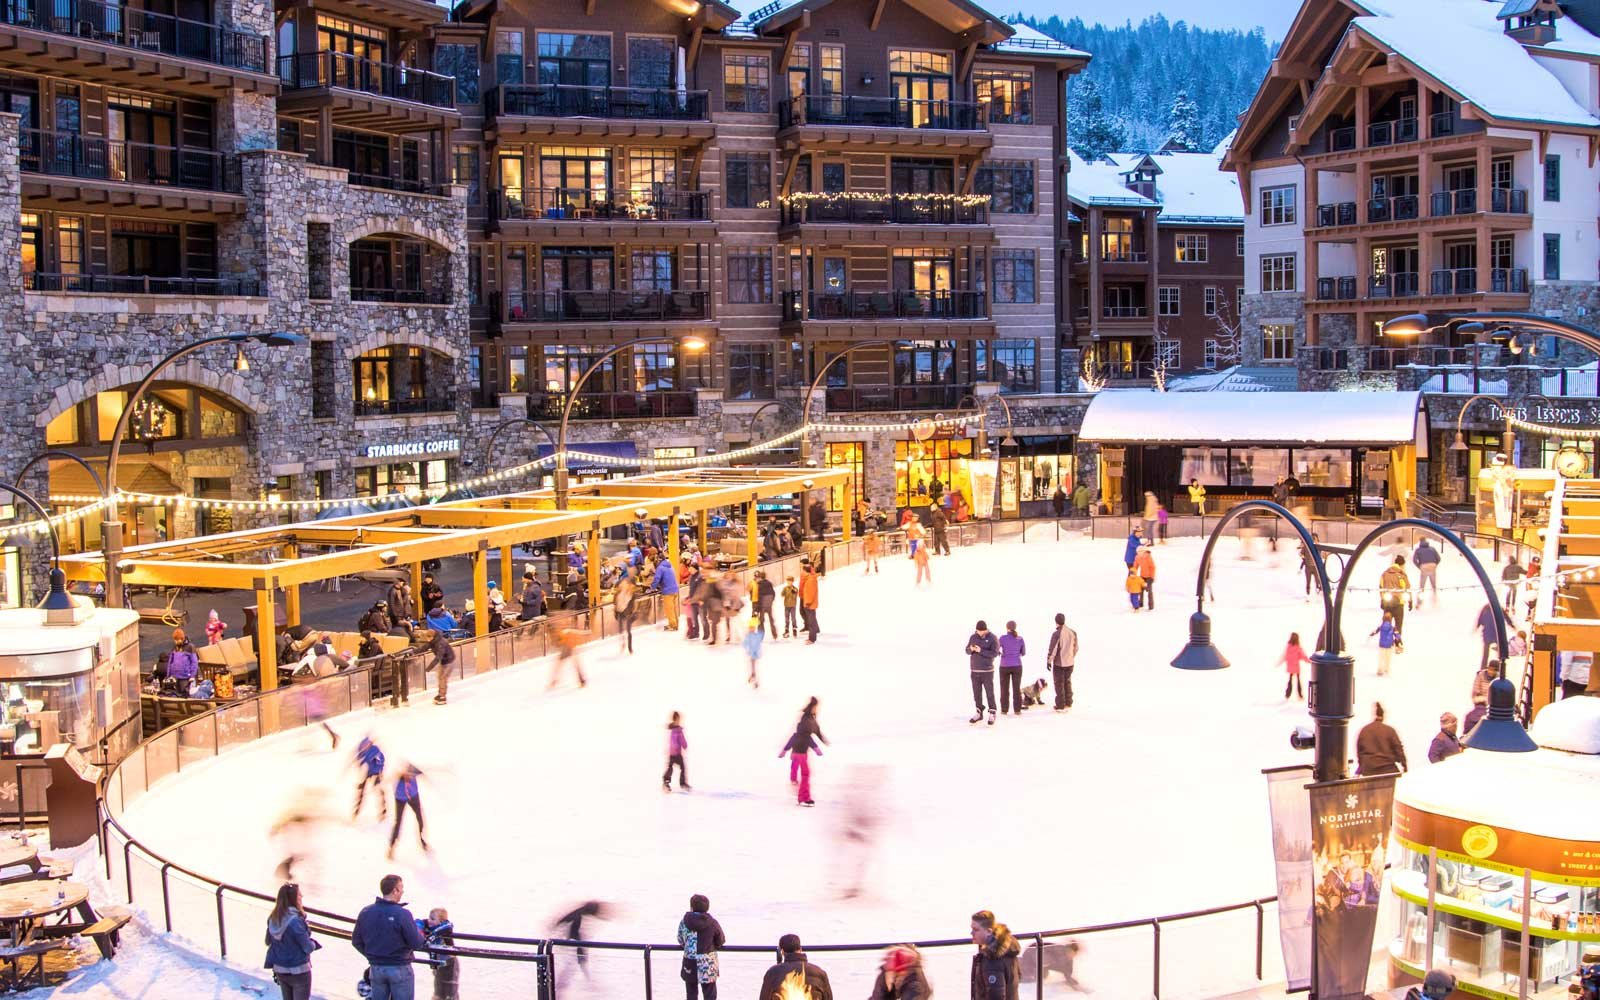 Ice skating rink at Northstar Resort